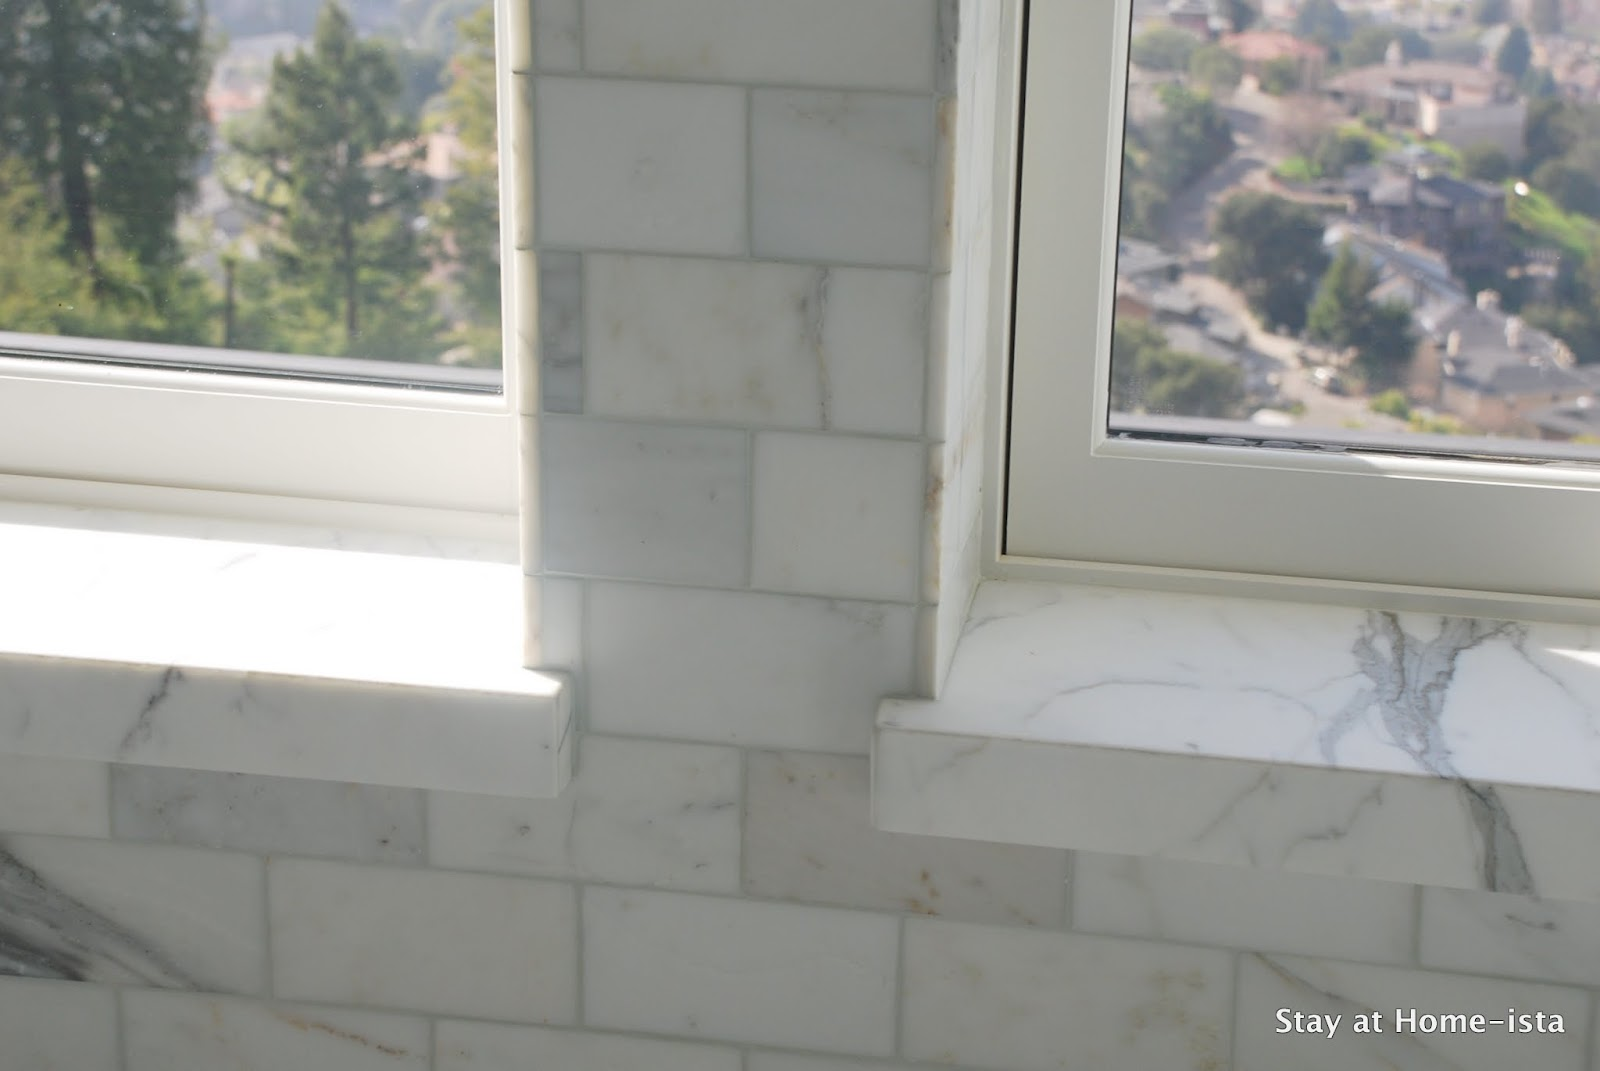 Beautiful The Tile Breaks Halfway Across The Bottom Of The Window So We Tiled